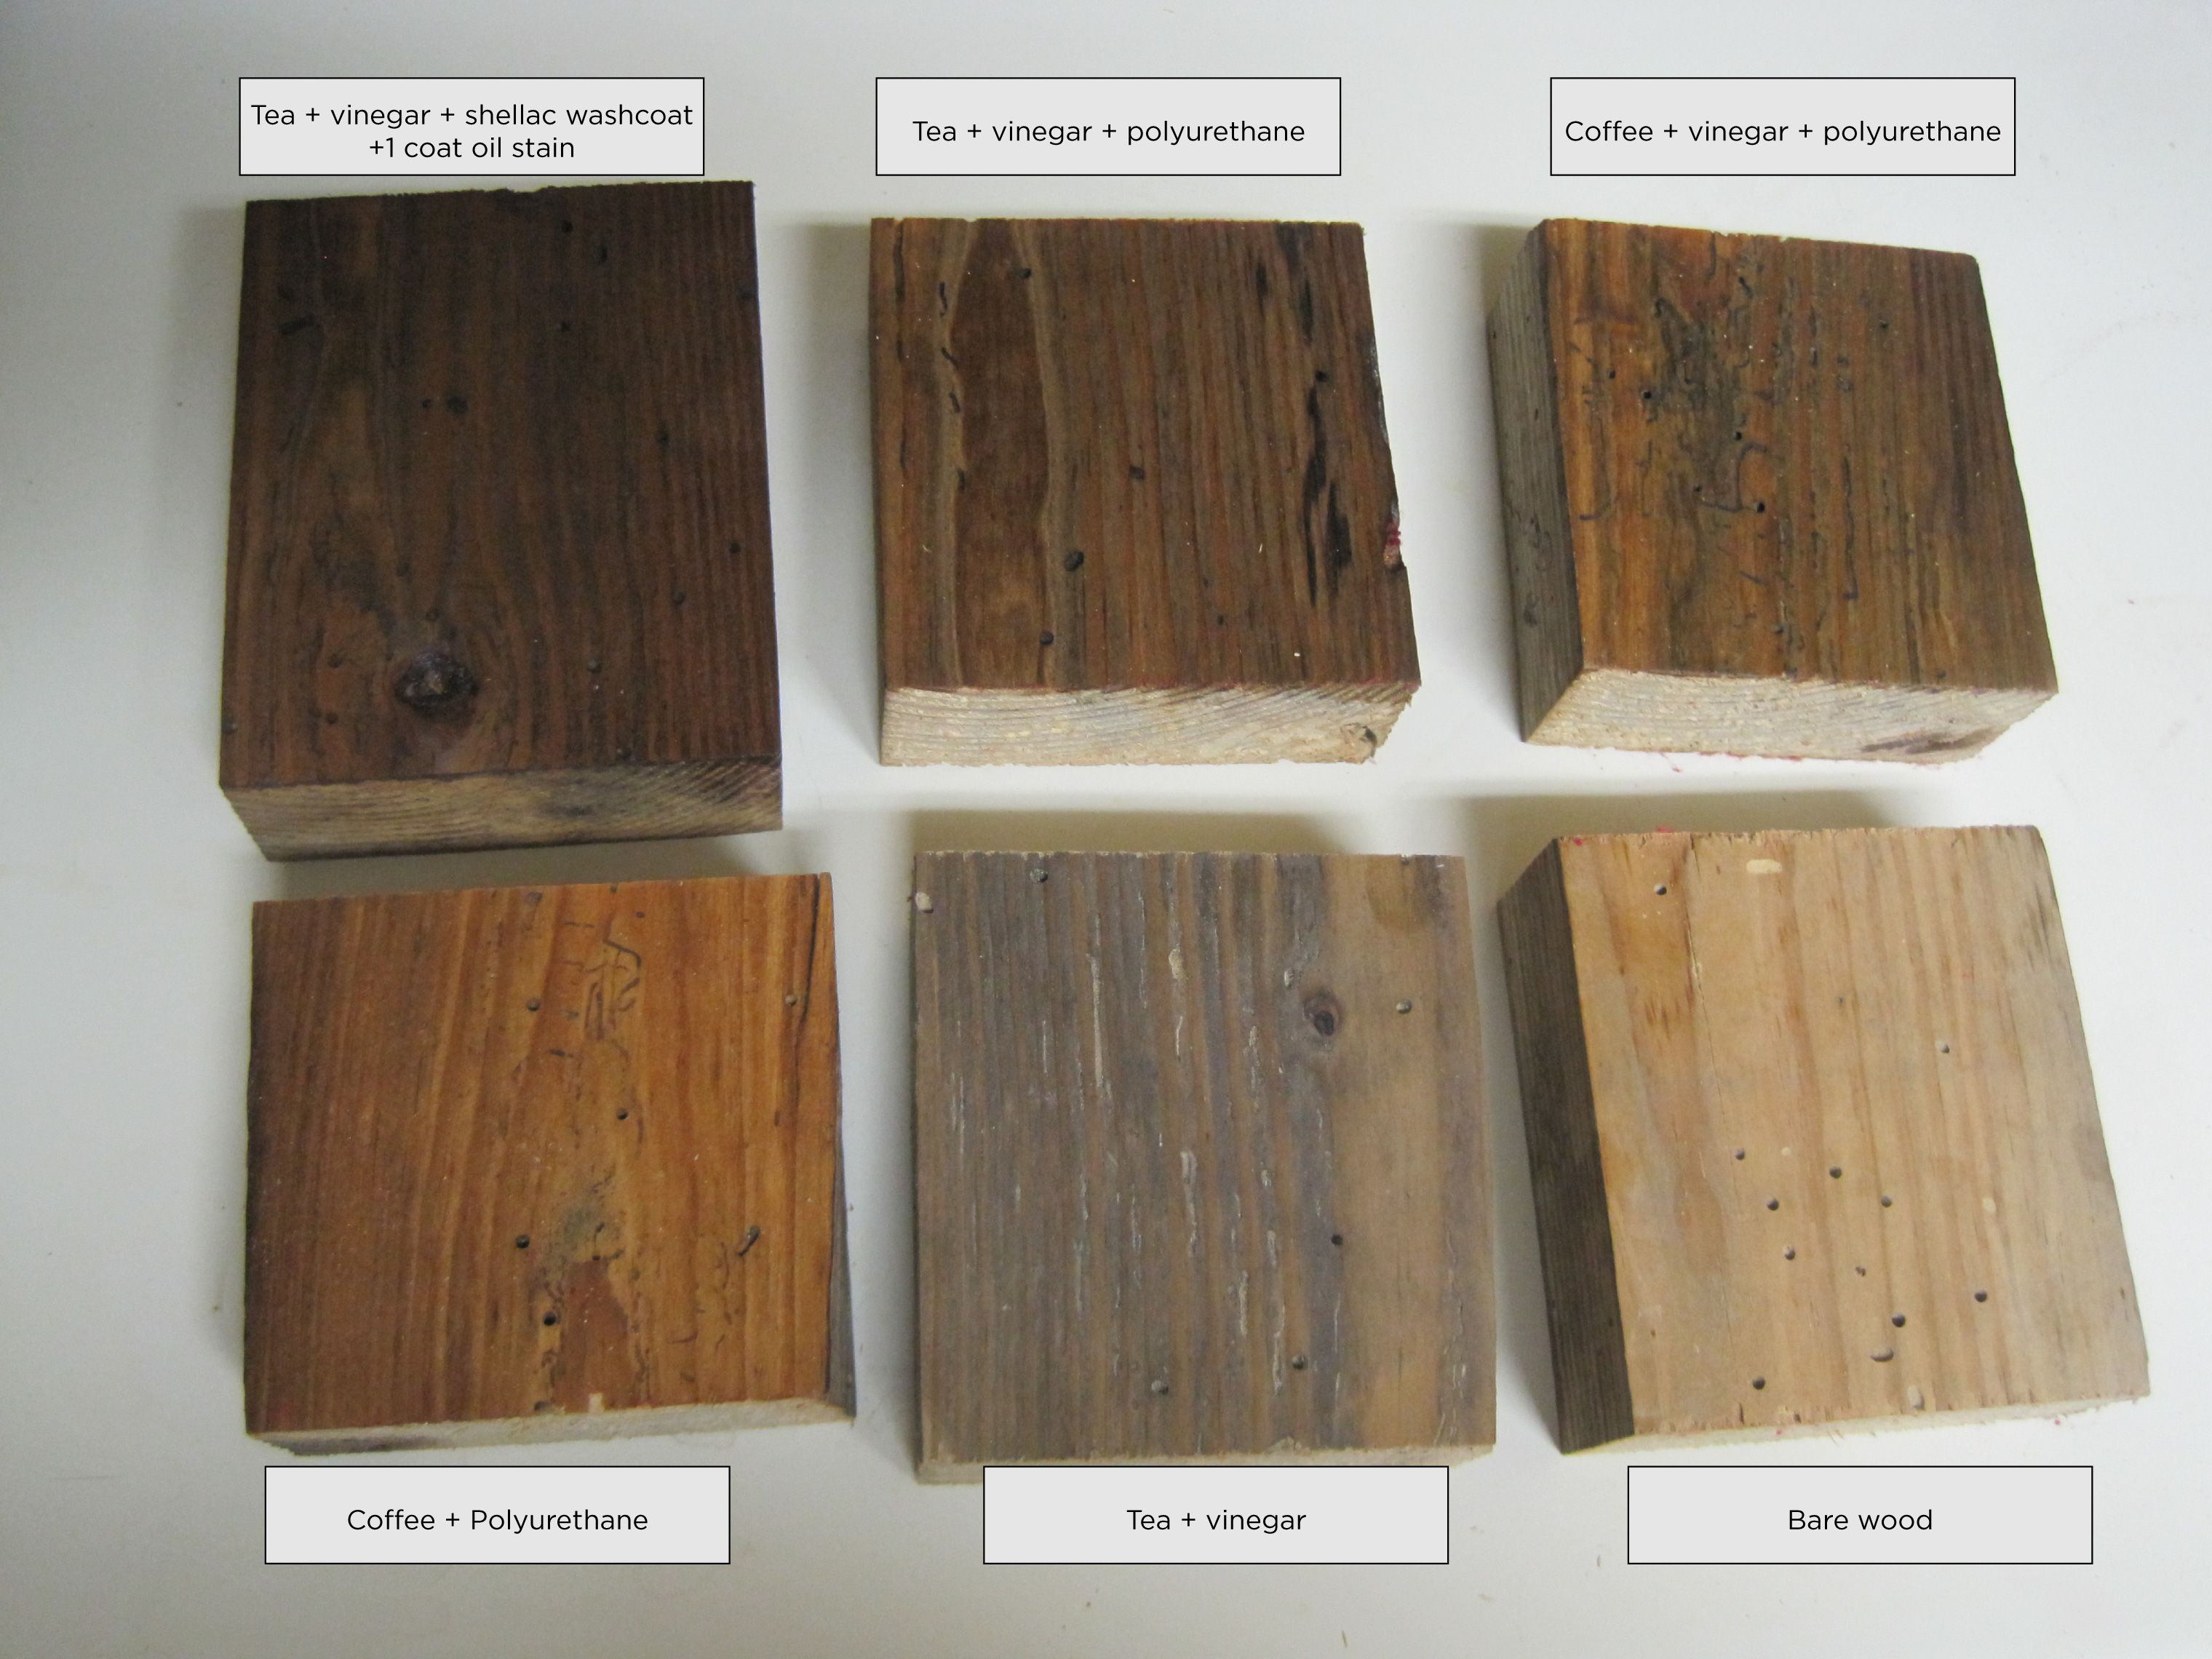 Different techniques for aging new wood painted stained or mesmerizing minwax stains color for every wood project minwax stain color chart nvjuhfo Image collections